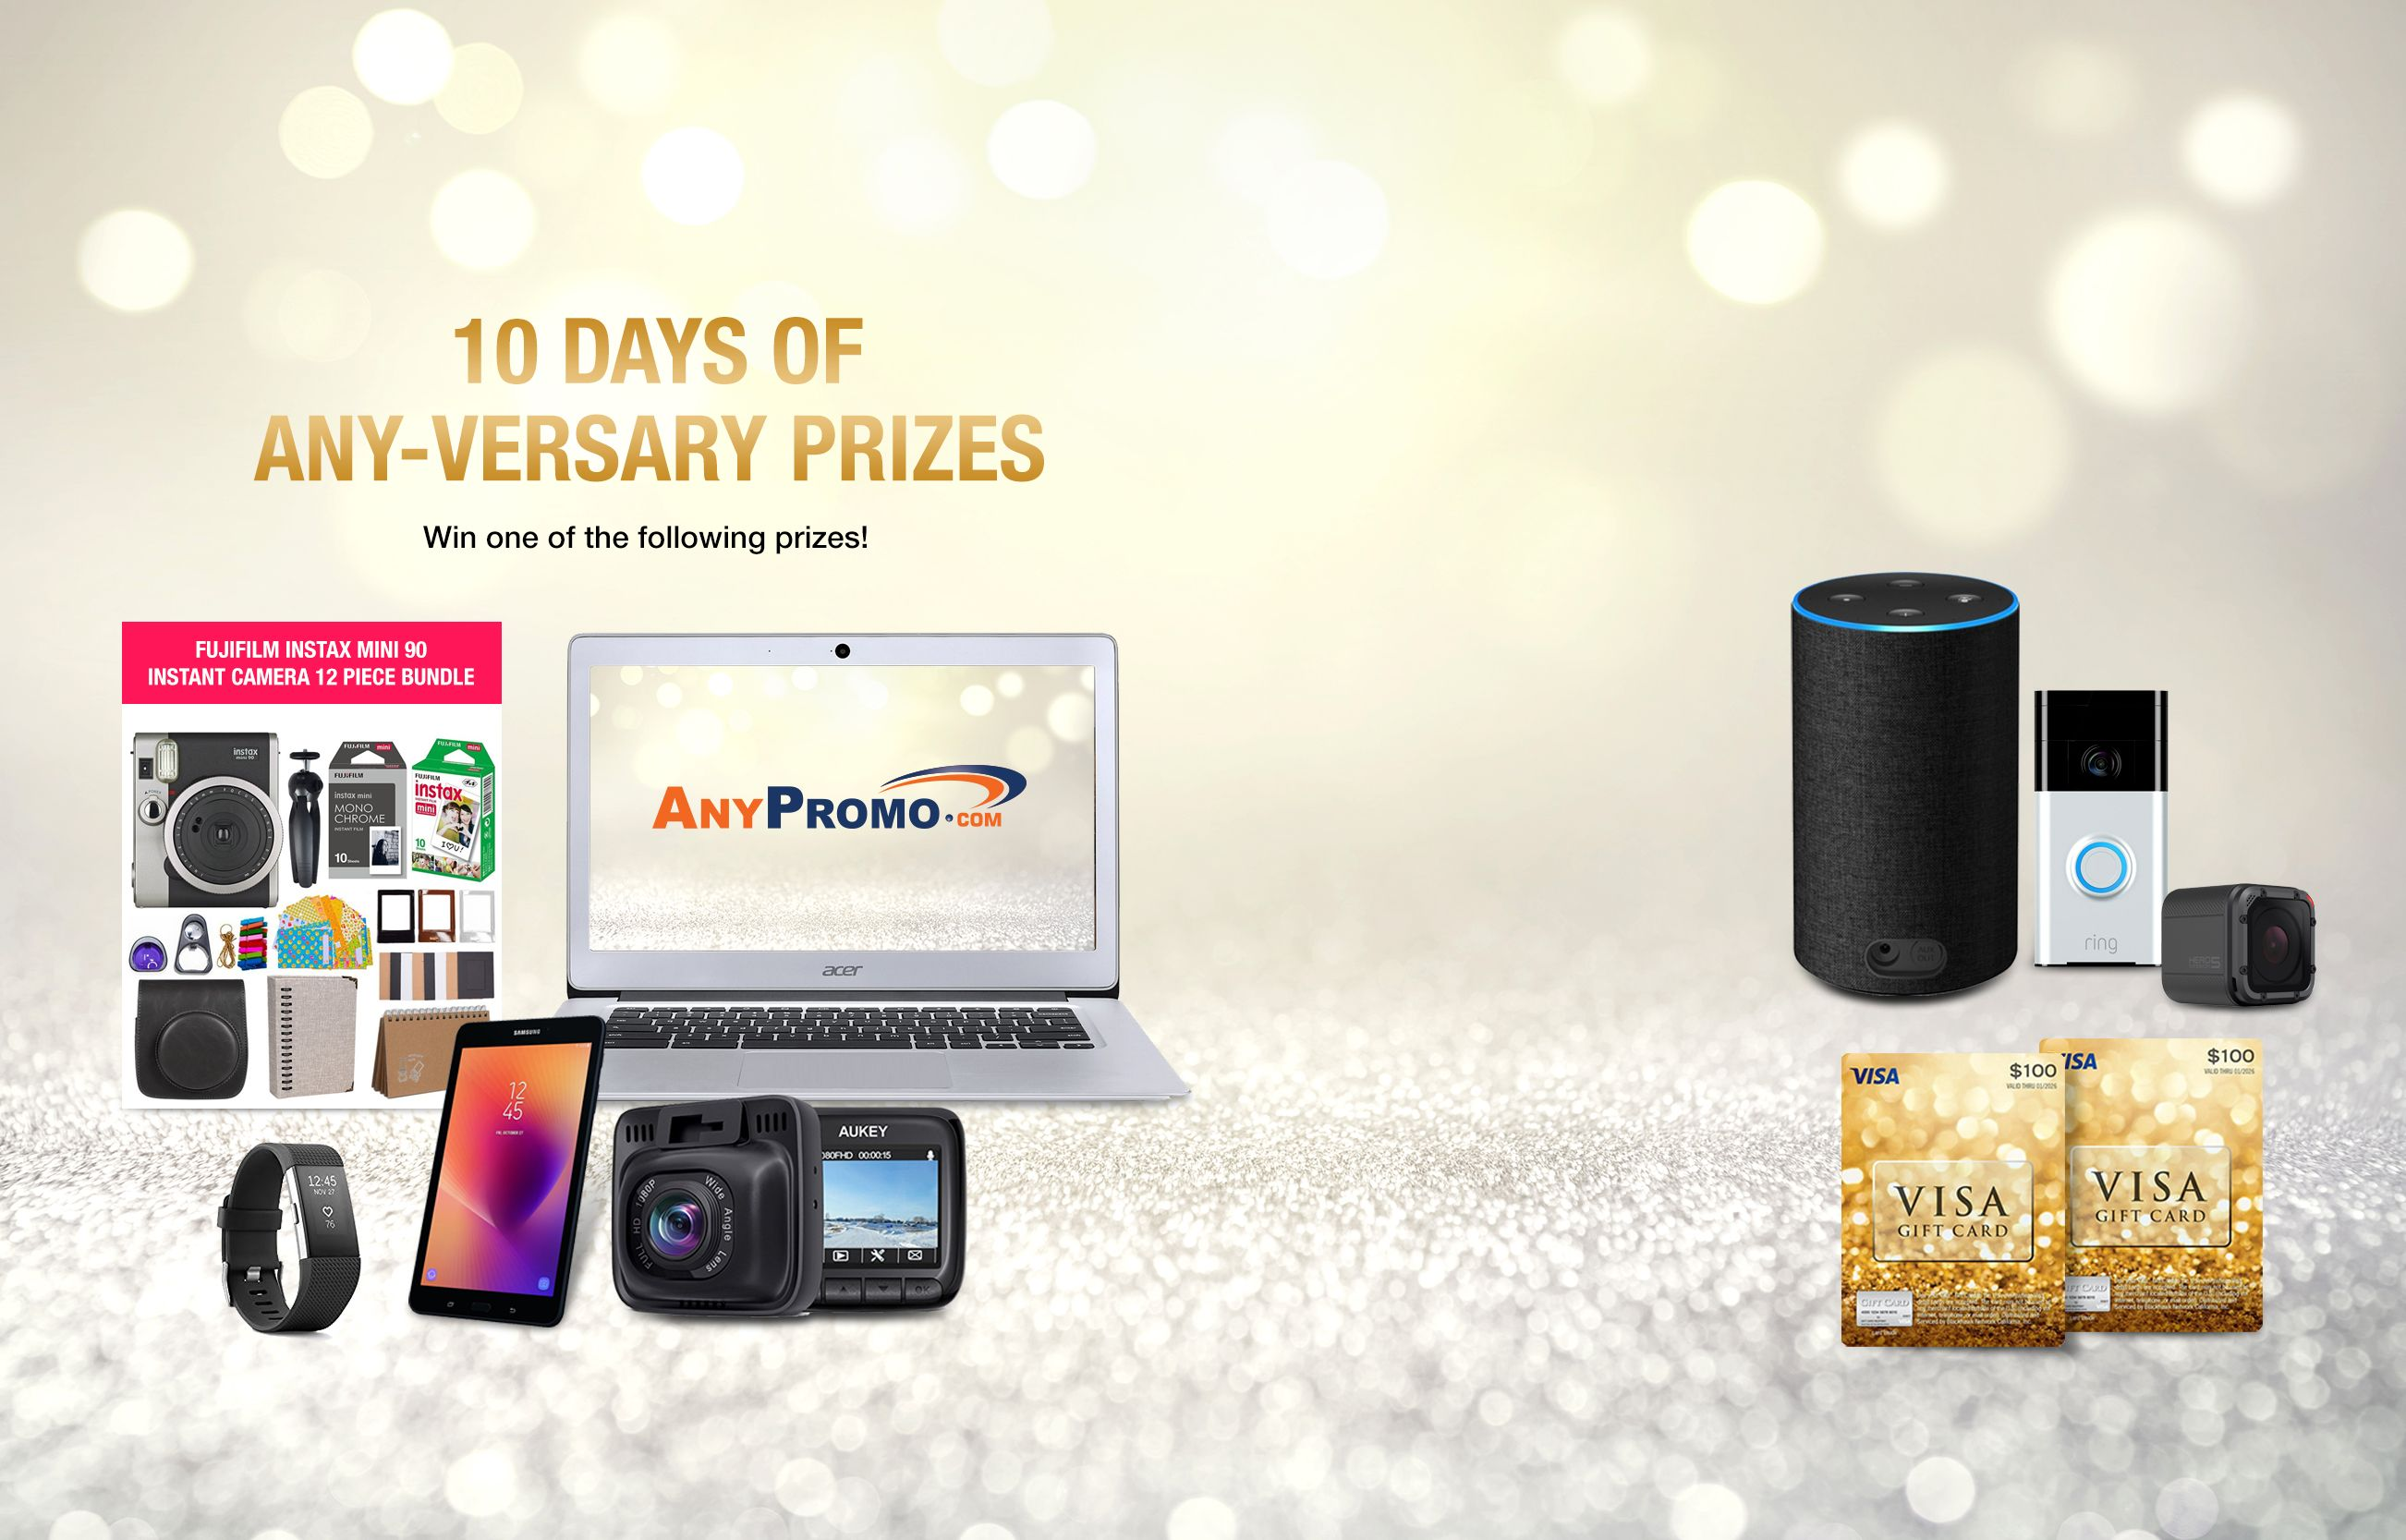 10 Days Of Any Versary Prizes Enter Sweepstakes Win Prizes